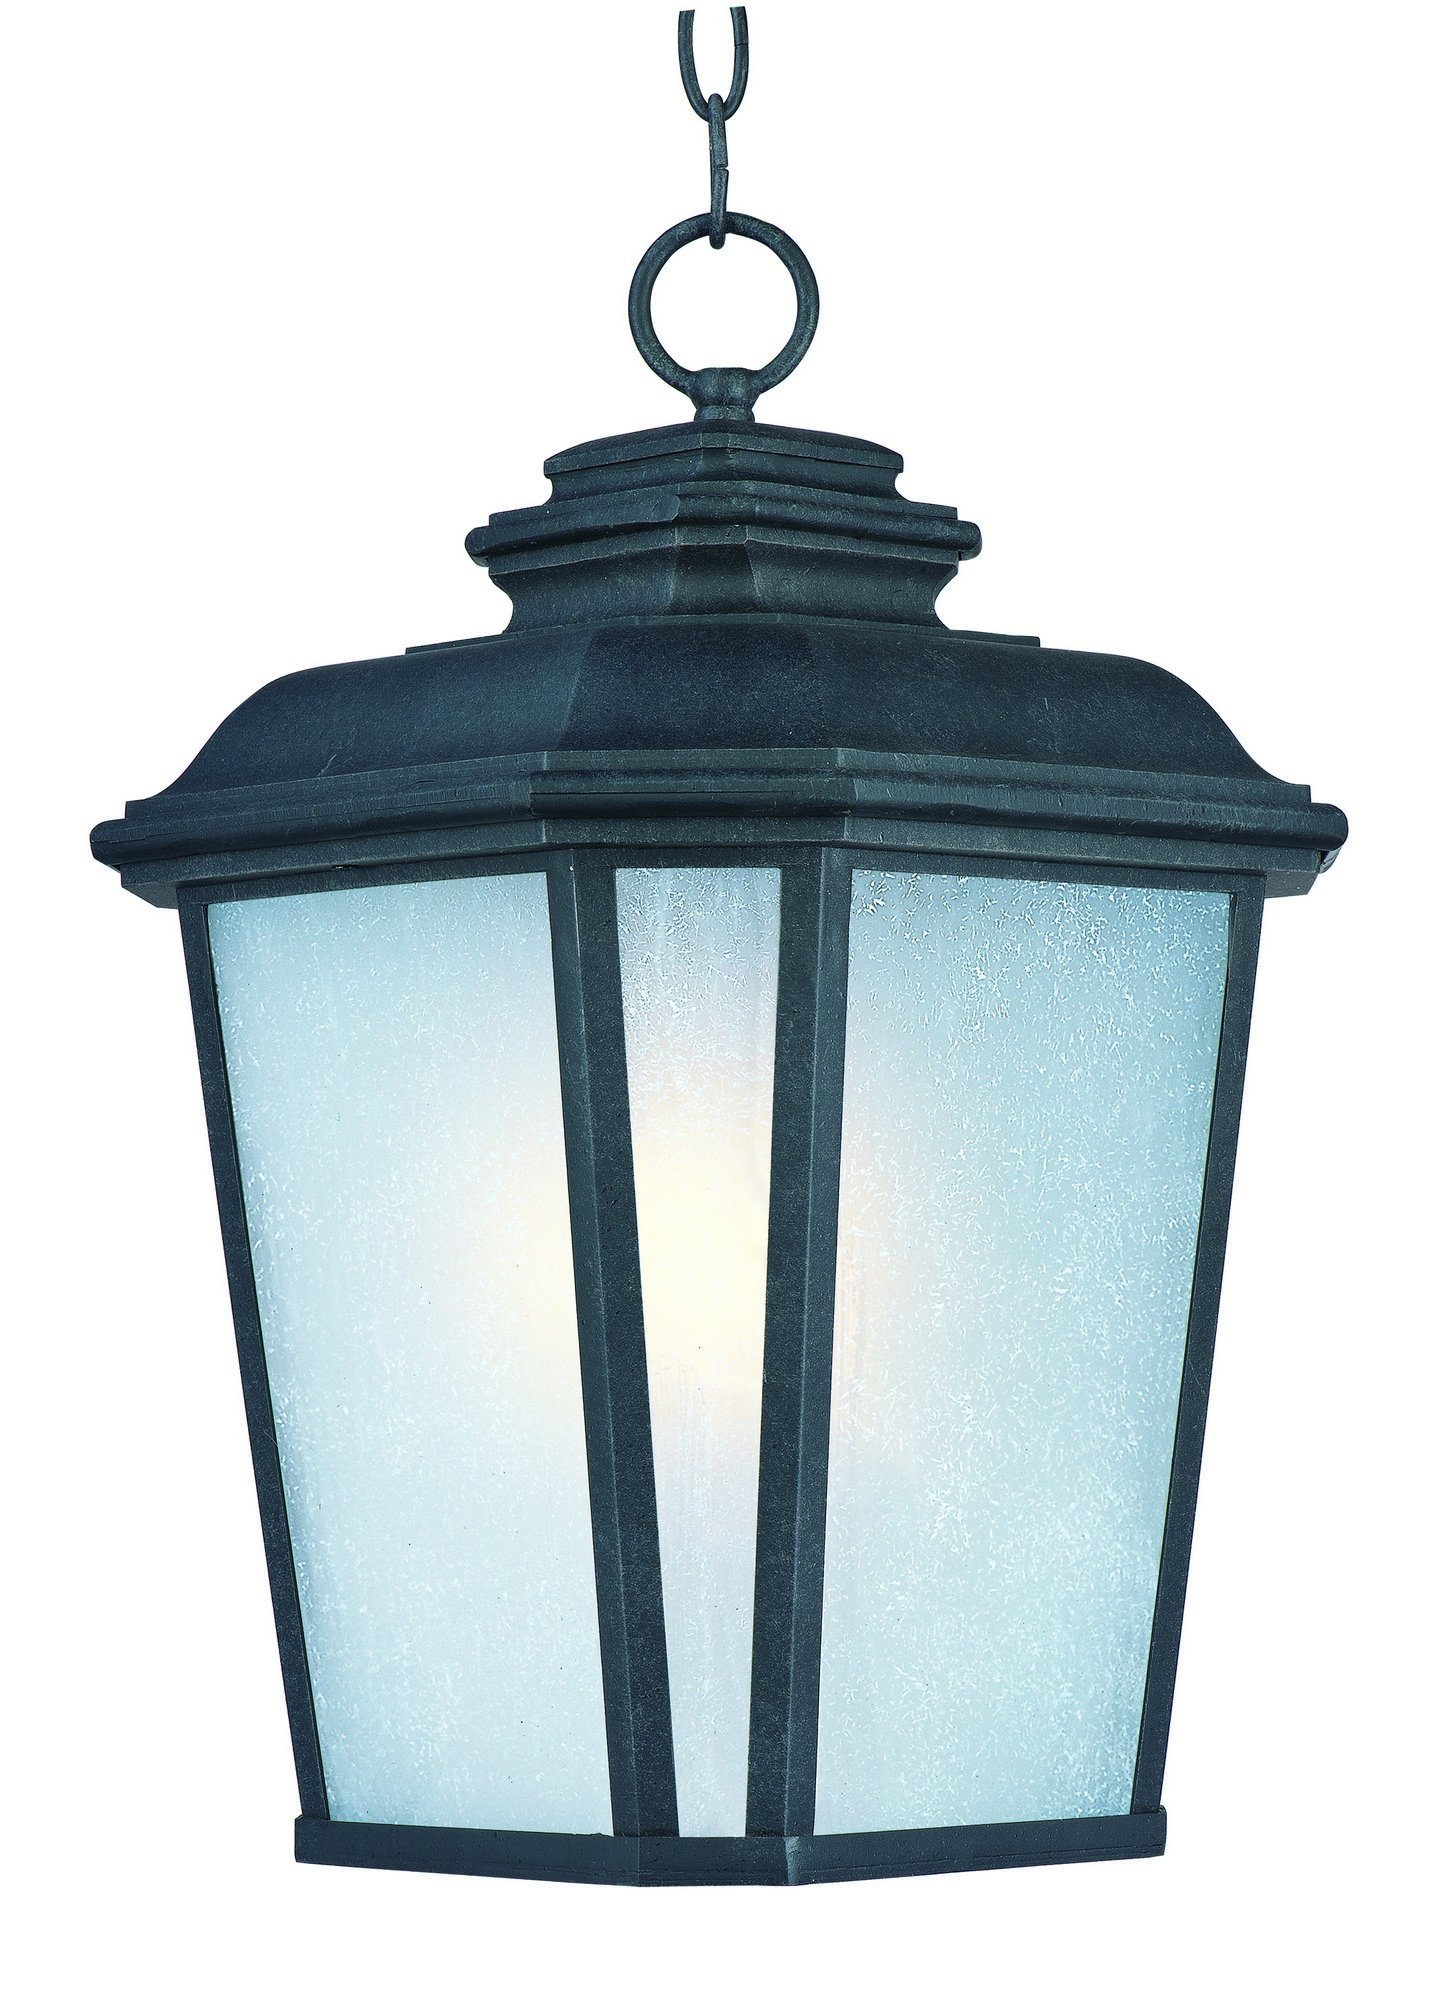 Maxim Lighting 3349 Radcliffe Outdoor Hanging Lantern, Black Oxide Finish, 11 by 16.5-Inch